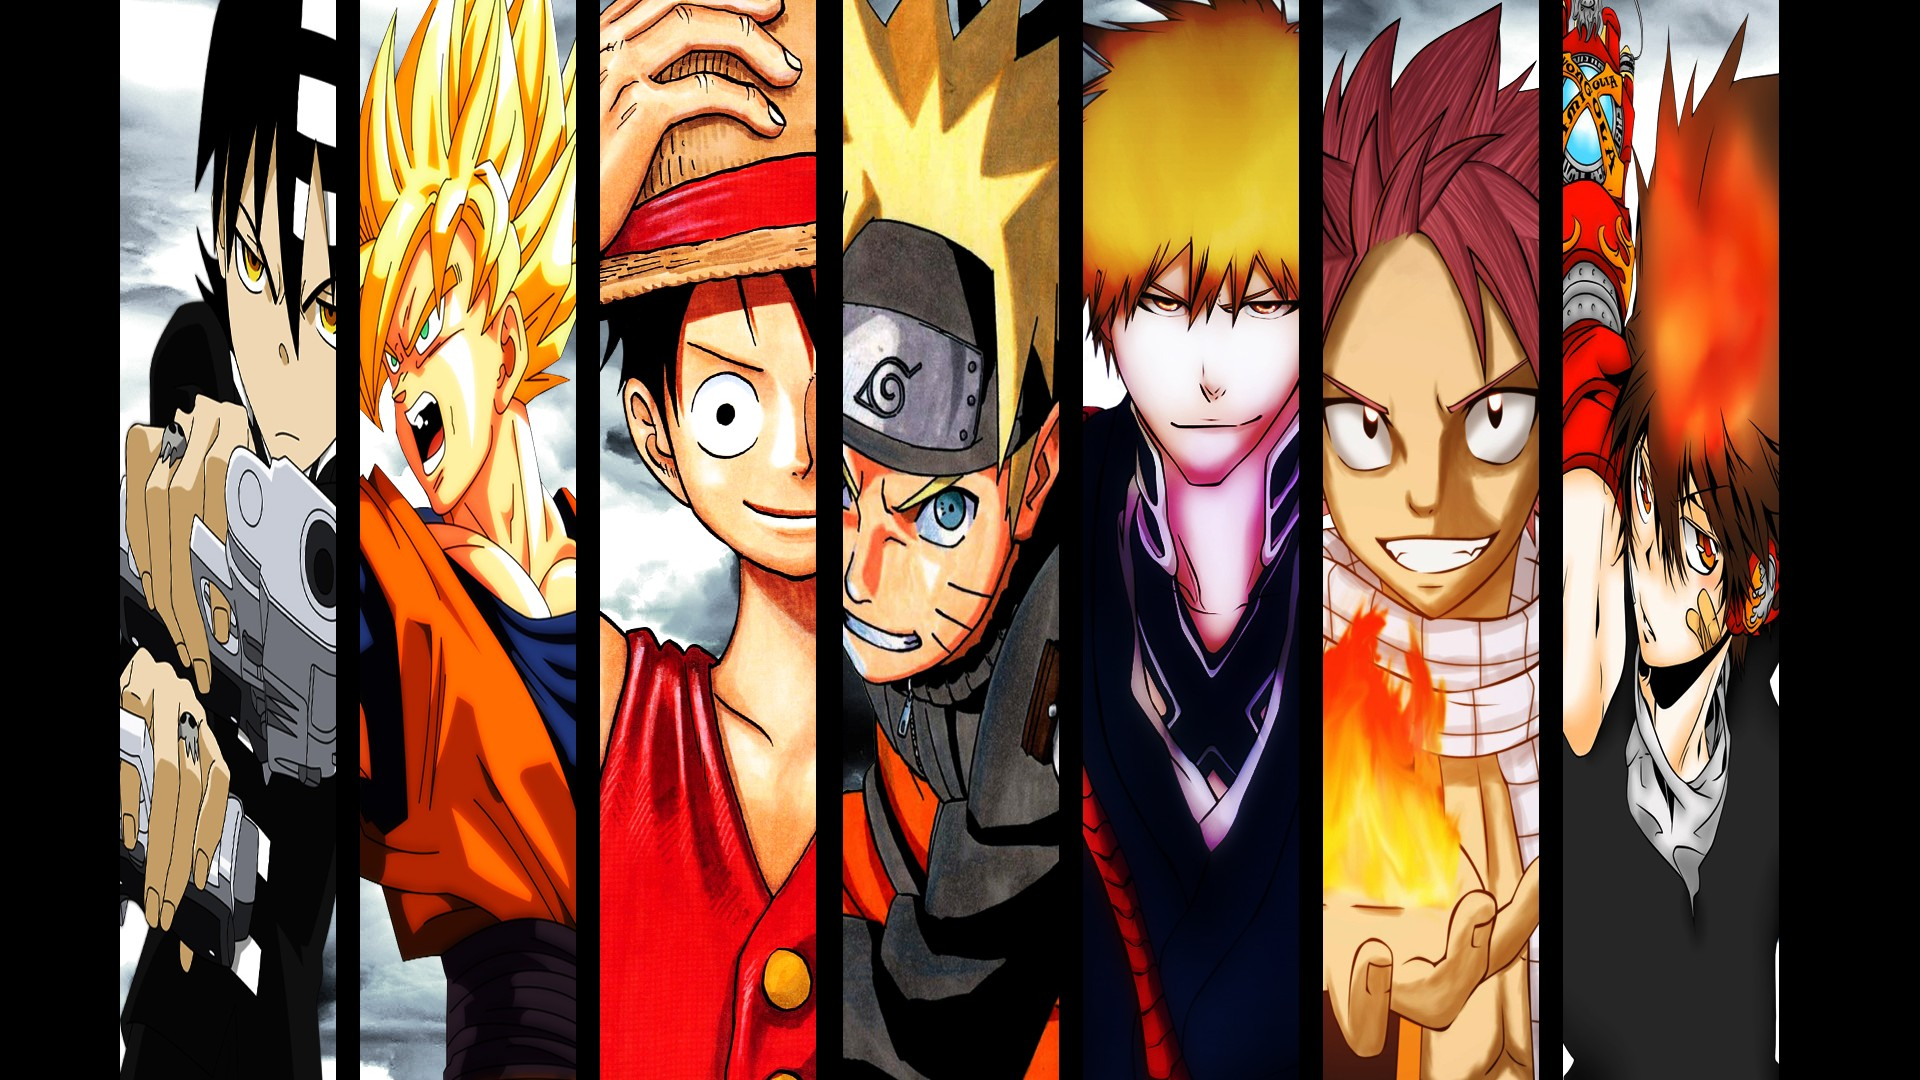 Naruto wallpapers and desktop backgrounds up to 8k - Dragon ball one piece ...